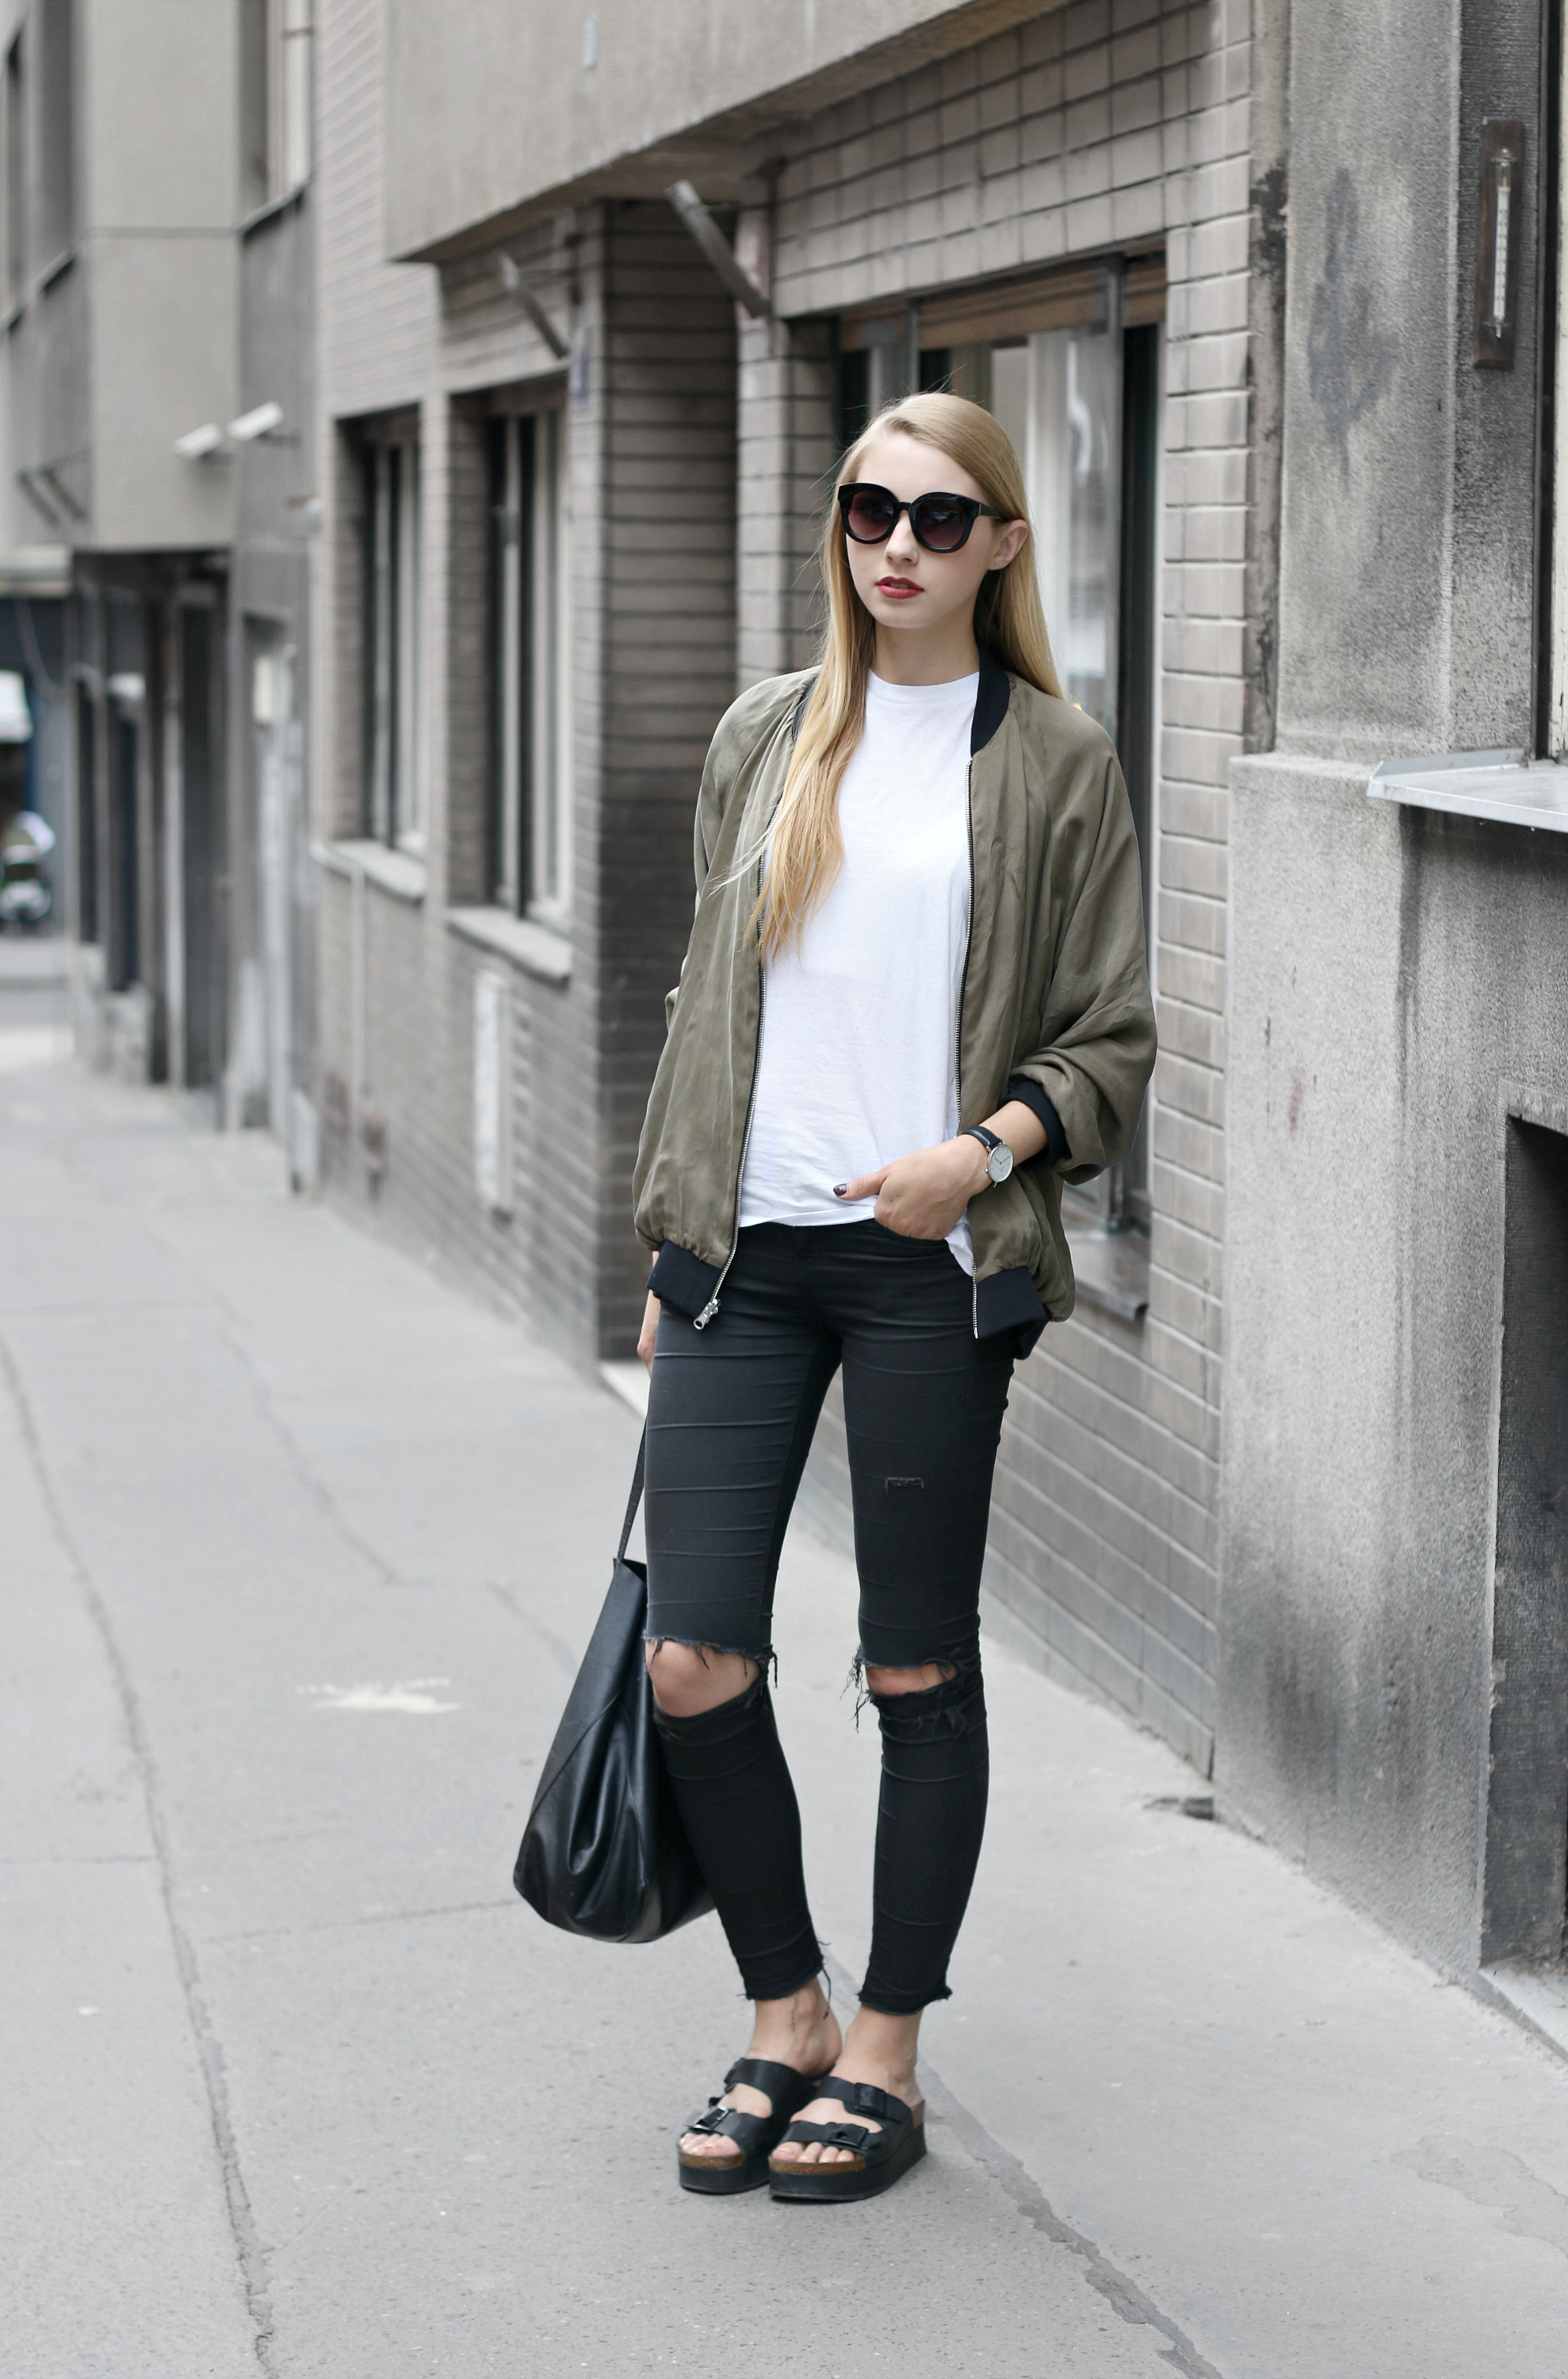 How To Wear Bomber Jacket iQCTc0